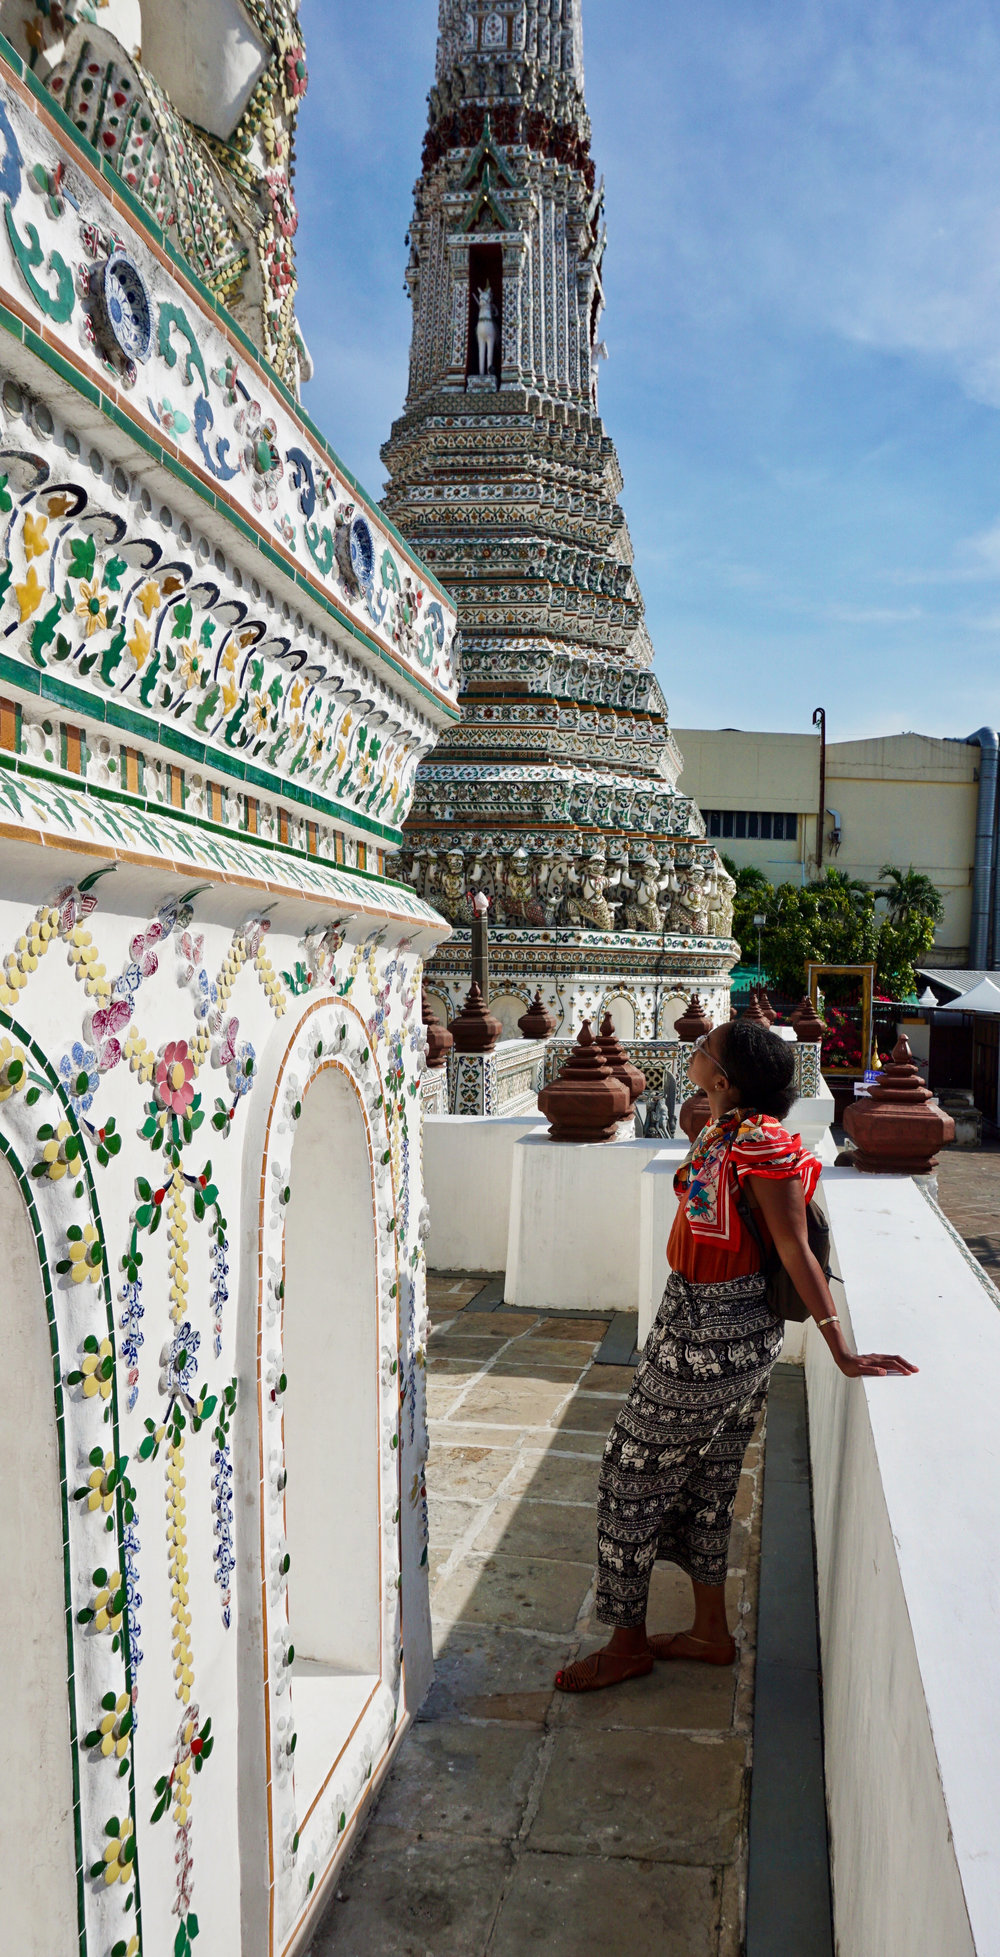 Closeup of the details on the outer walls of Wat Arun